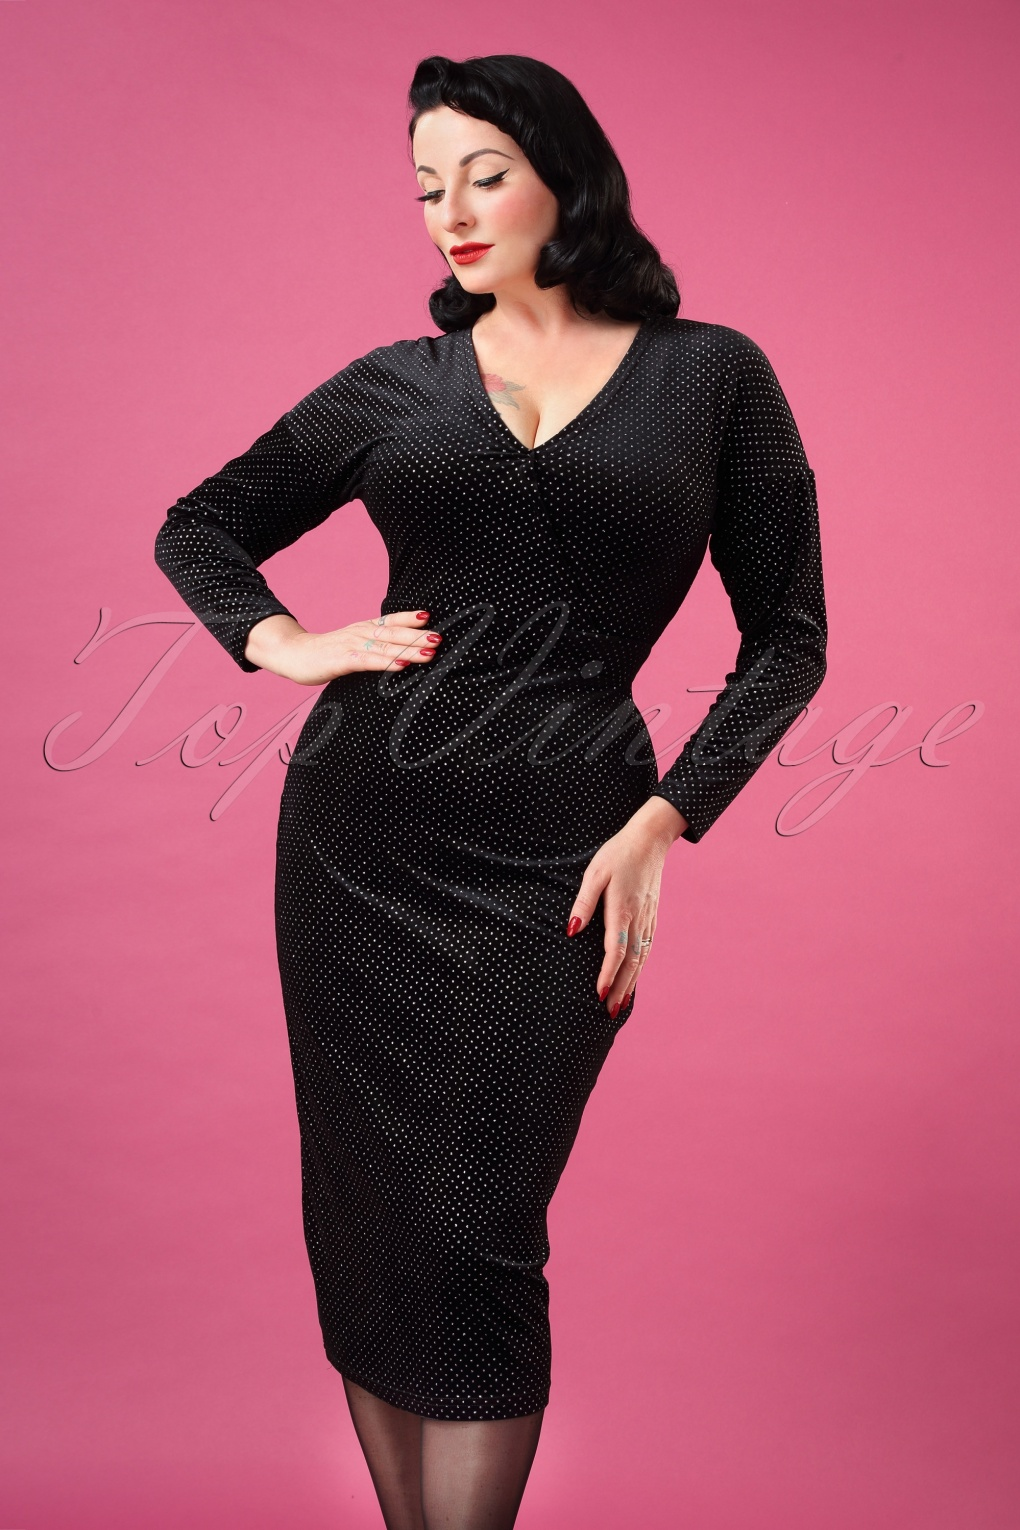 Rockabilly Dresses | Rockabilly Clothing | Viva Las Vegas 50s Metal Polka Velvet Pencil Dress in Black £40.43 AT vintagedancer.com